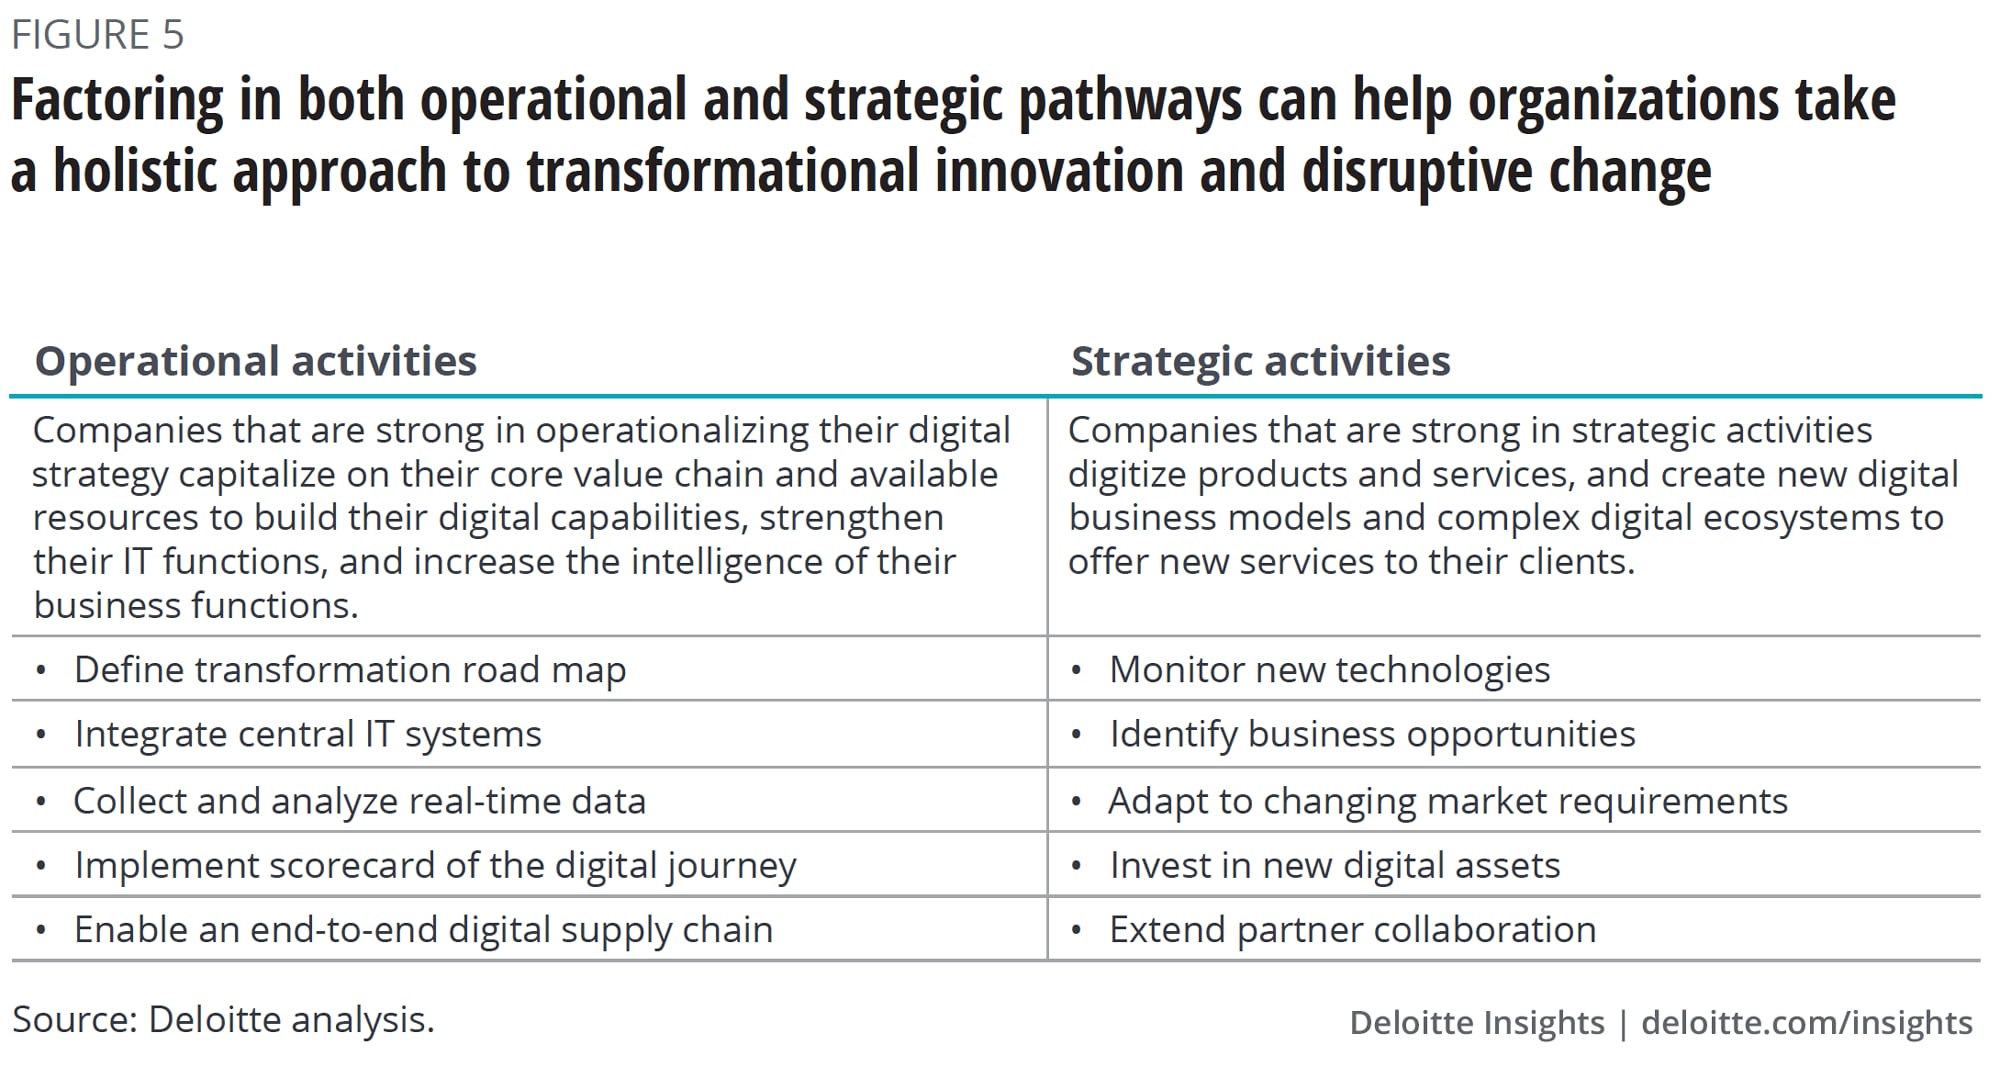 Factoring in both operational and strategic pathways can help organizations take a holistic approach to transformational innovation and disruptive change